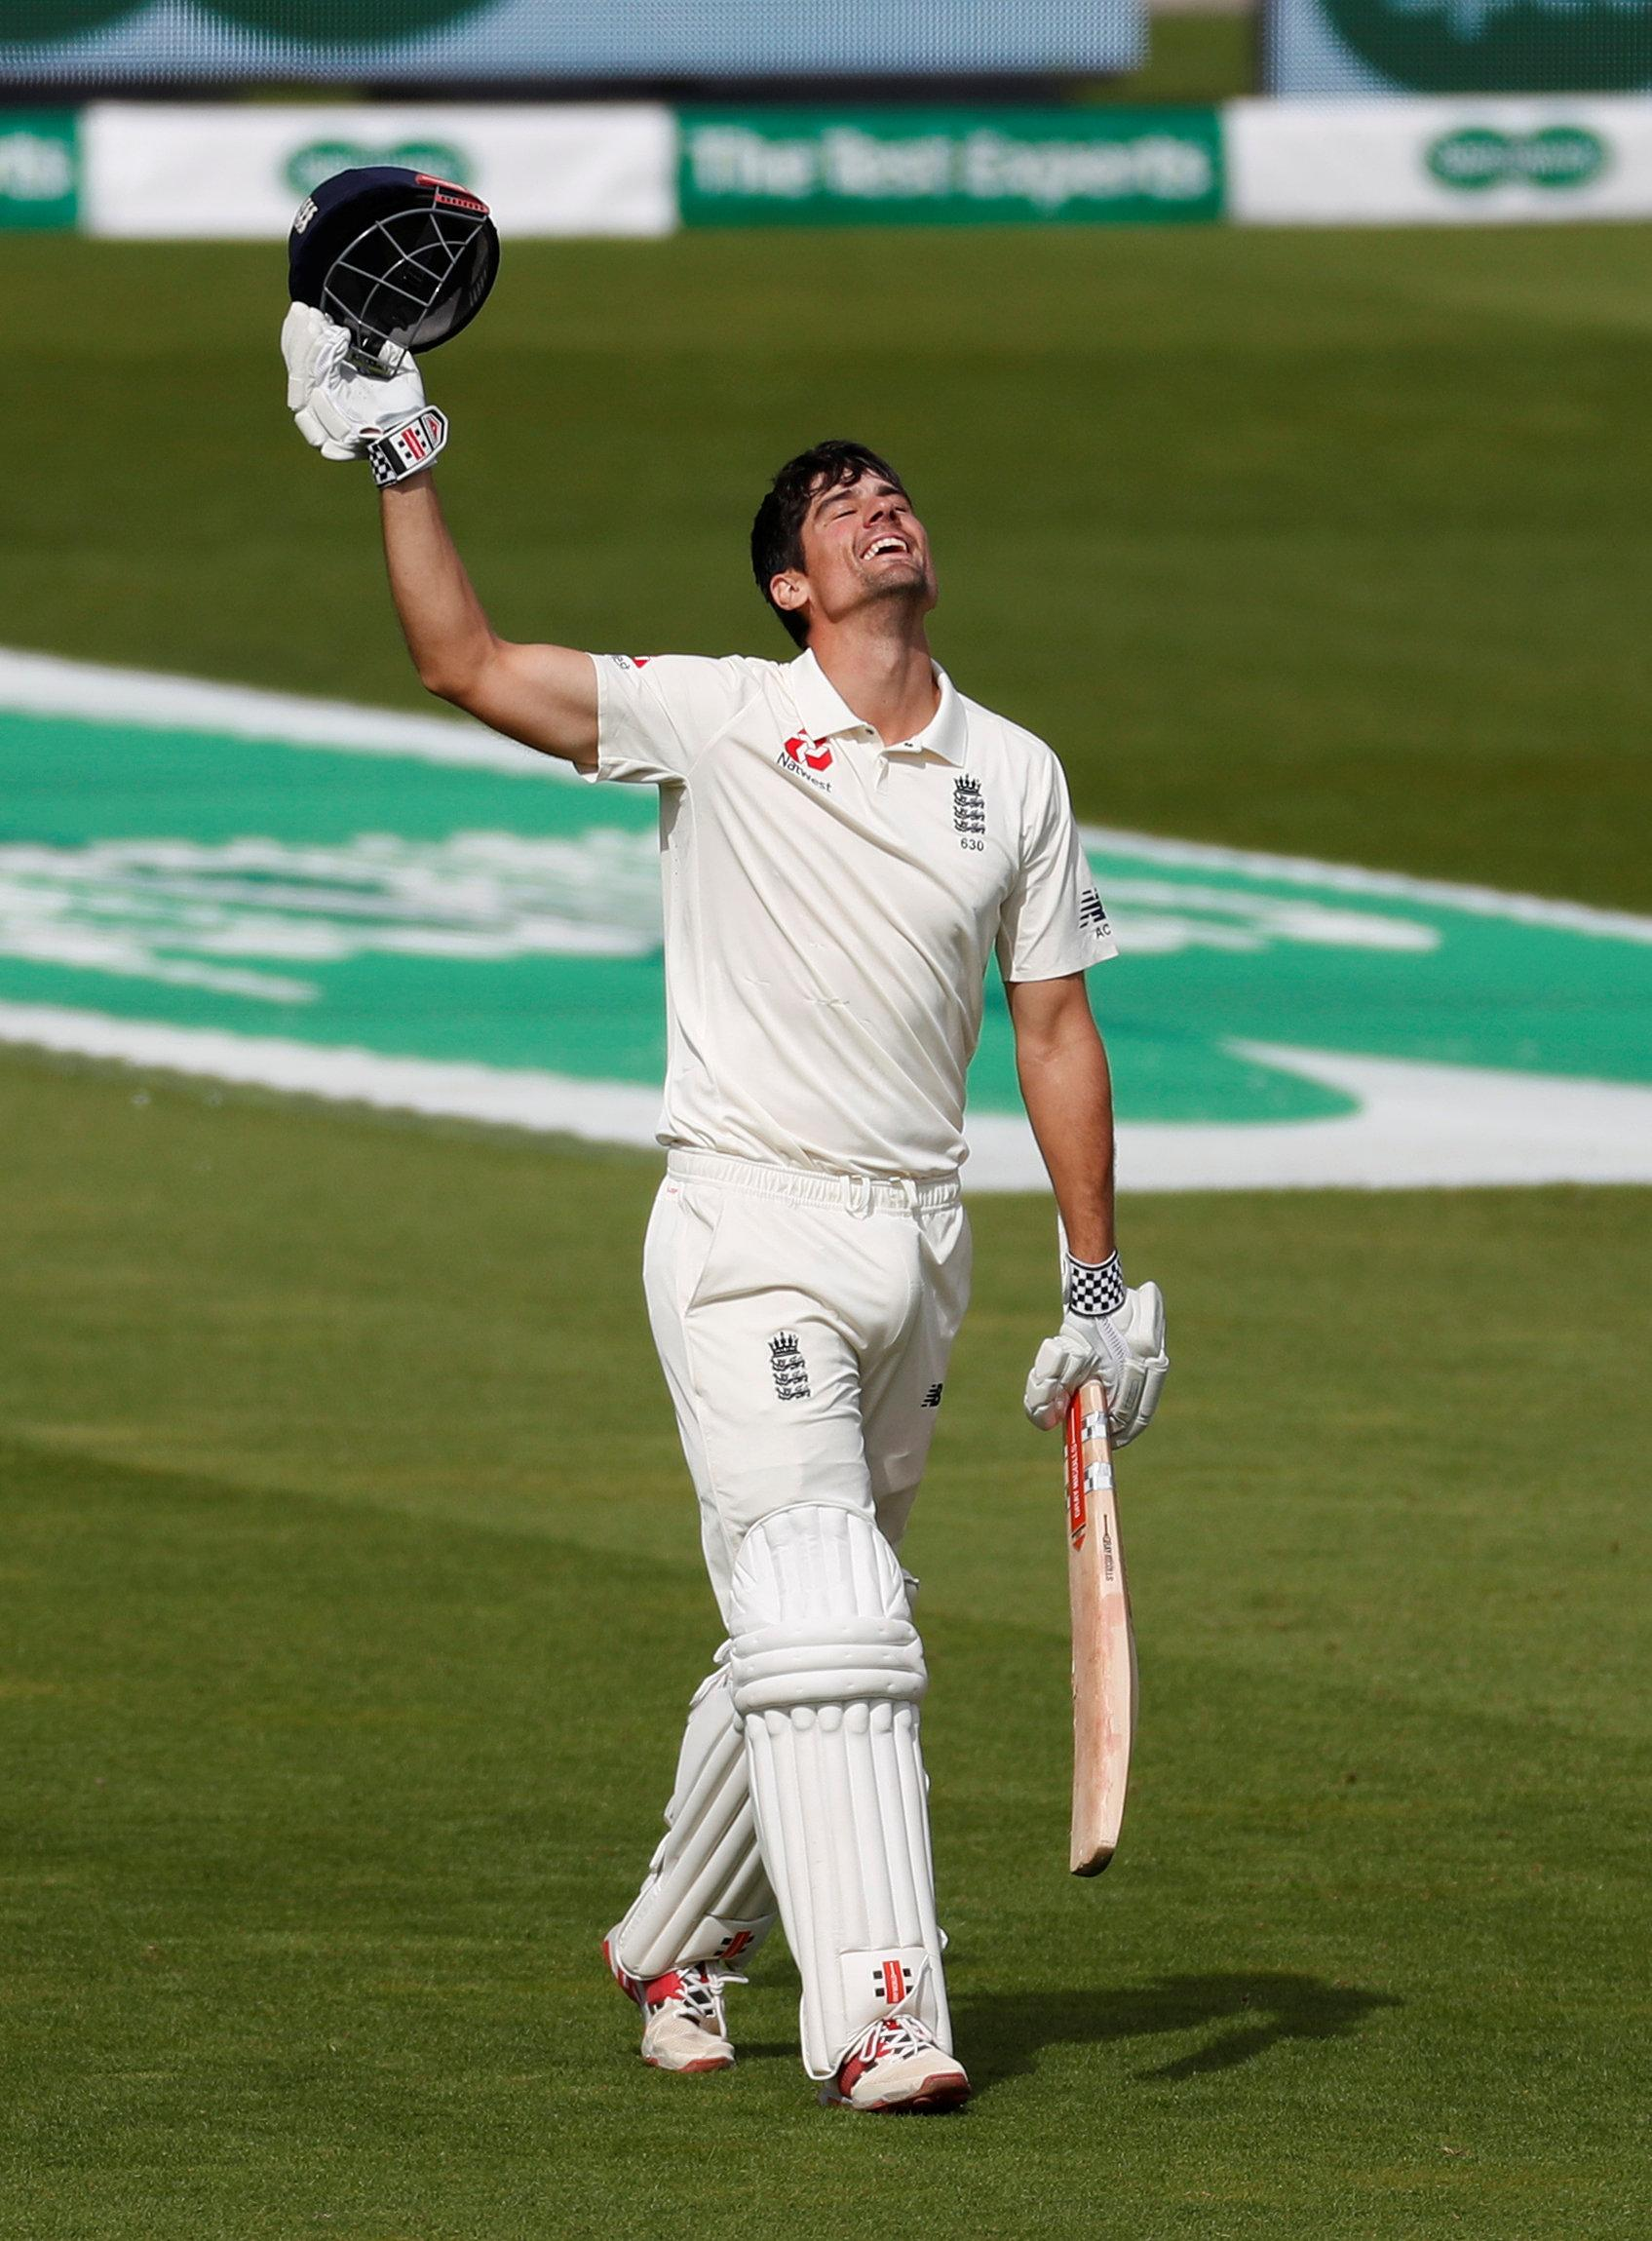 Alastair Cook scored a fantastic 147 in his final Test innings for England